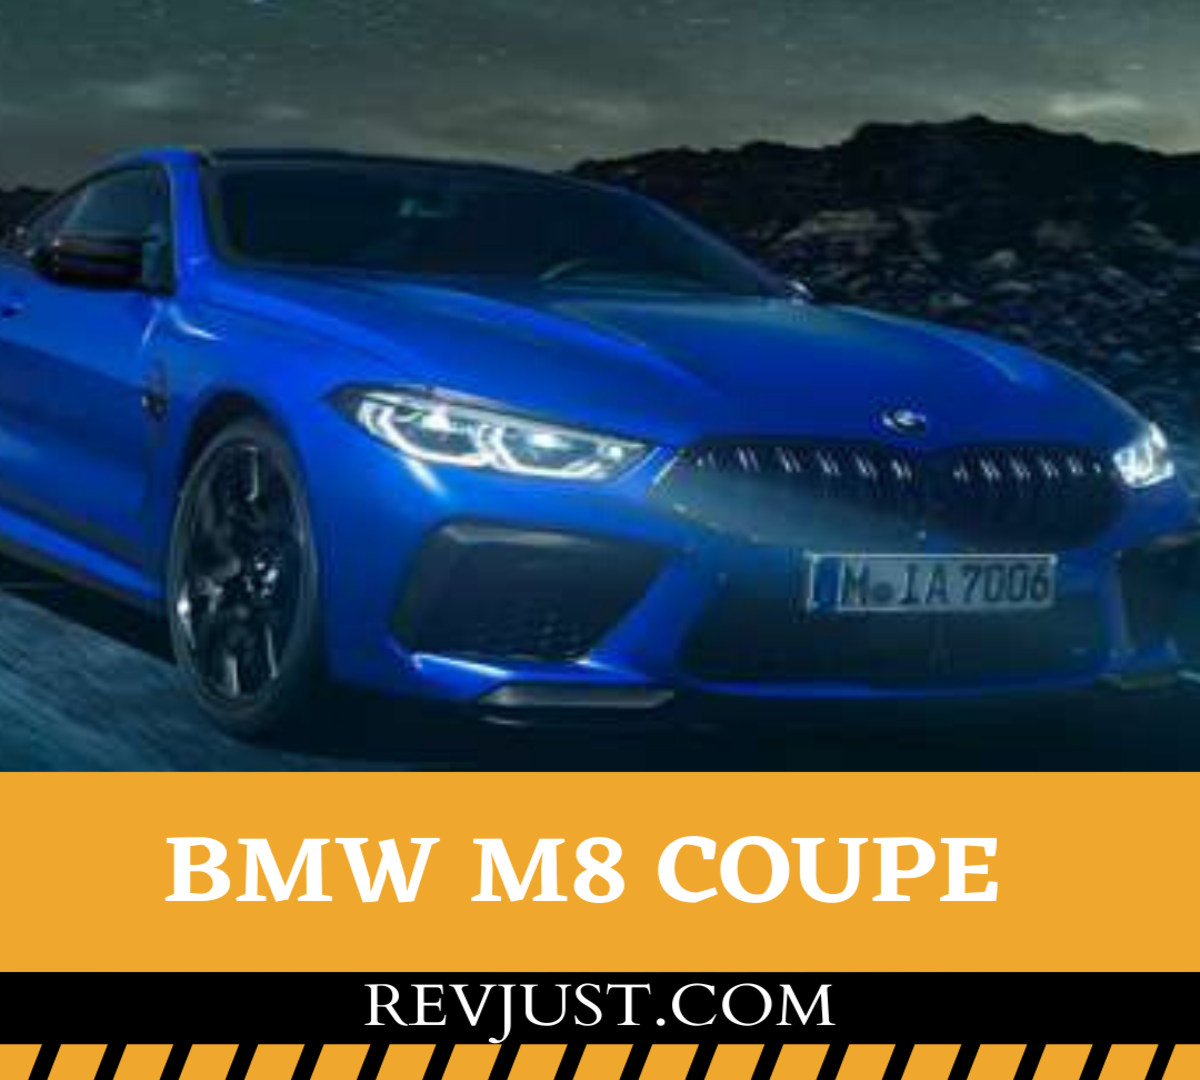 BMW M8 coupe 2020 INDIA